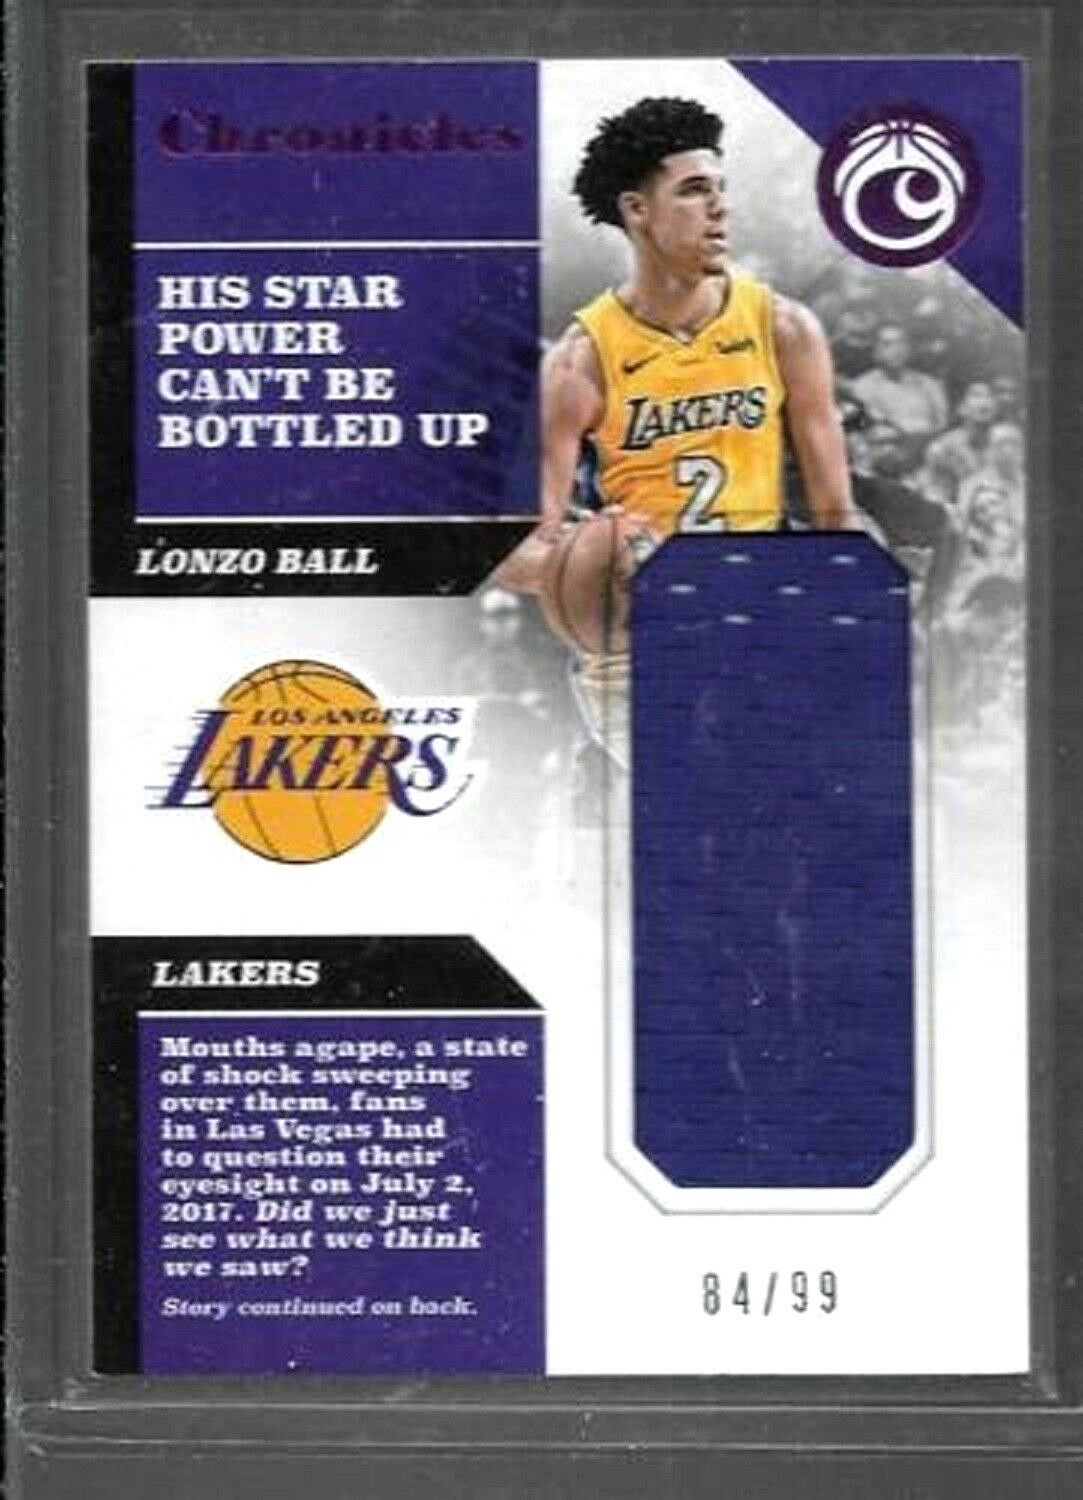 acebe393a LONZO BALL ROOKIE (LA LAKERS-G) PANINI CHRONICLES NUMBERED 84 99 GAME-USED  JERSEY PATCH ROOKIE CARD FROM 2017-2018 PANINI CHRONICLES BASKETBALL.